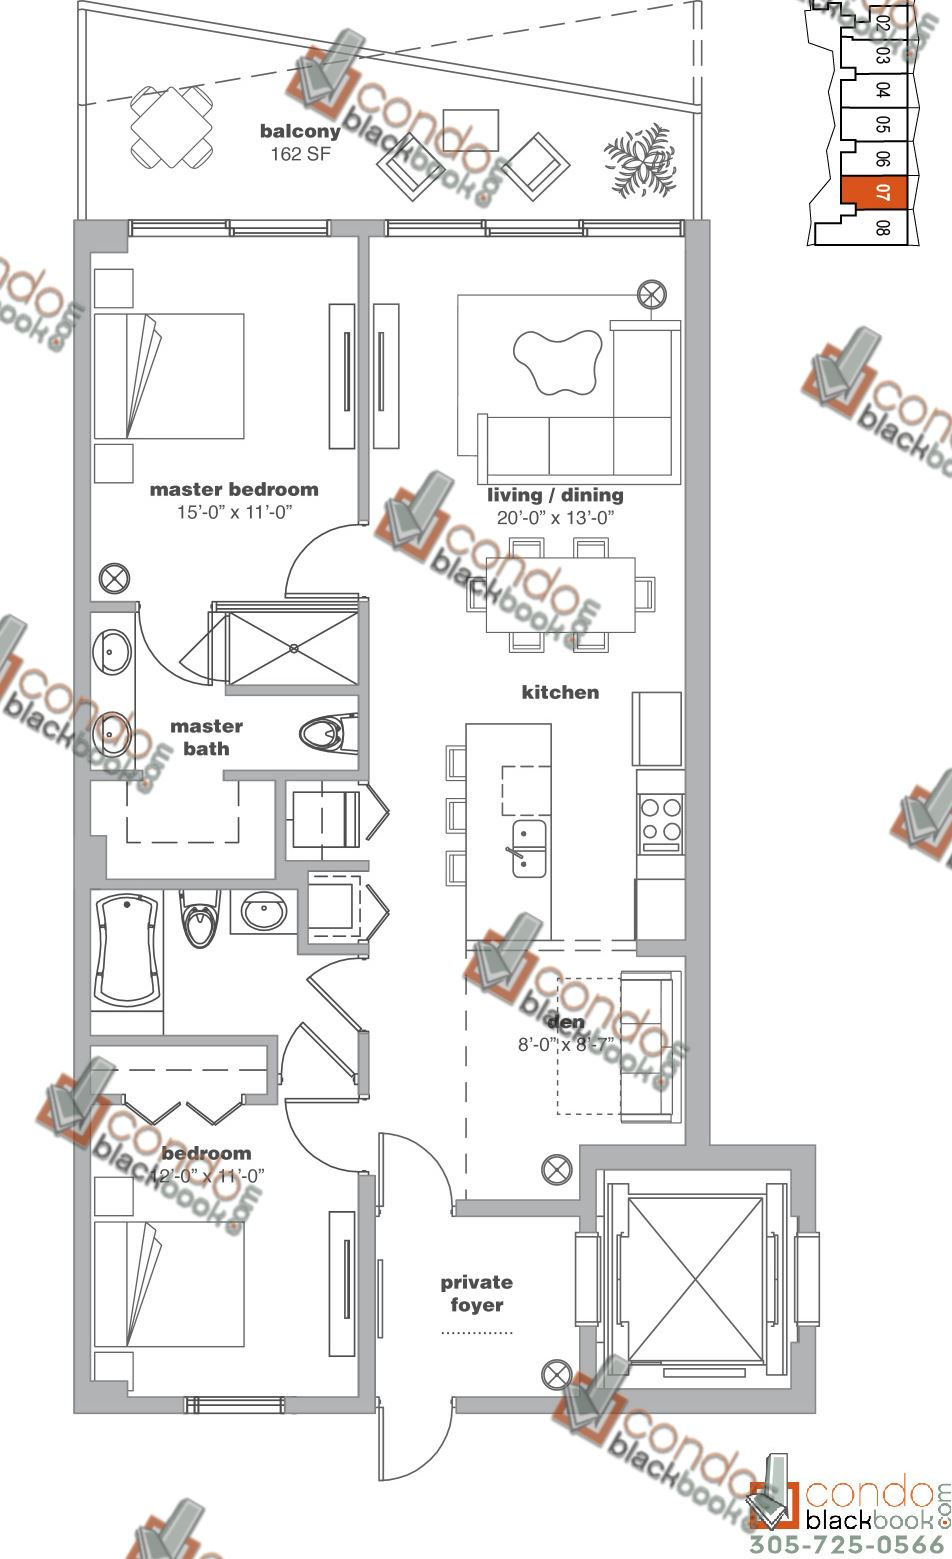 Floor plan for Icon Bay Edgewater Miami, model 07, line 07, 2/2+Den bedrooms, 1,343 sq ft